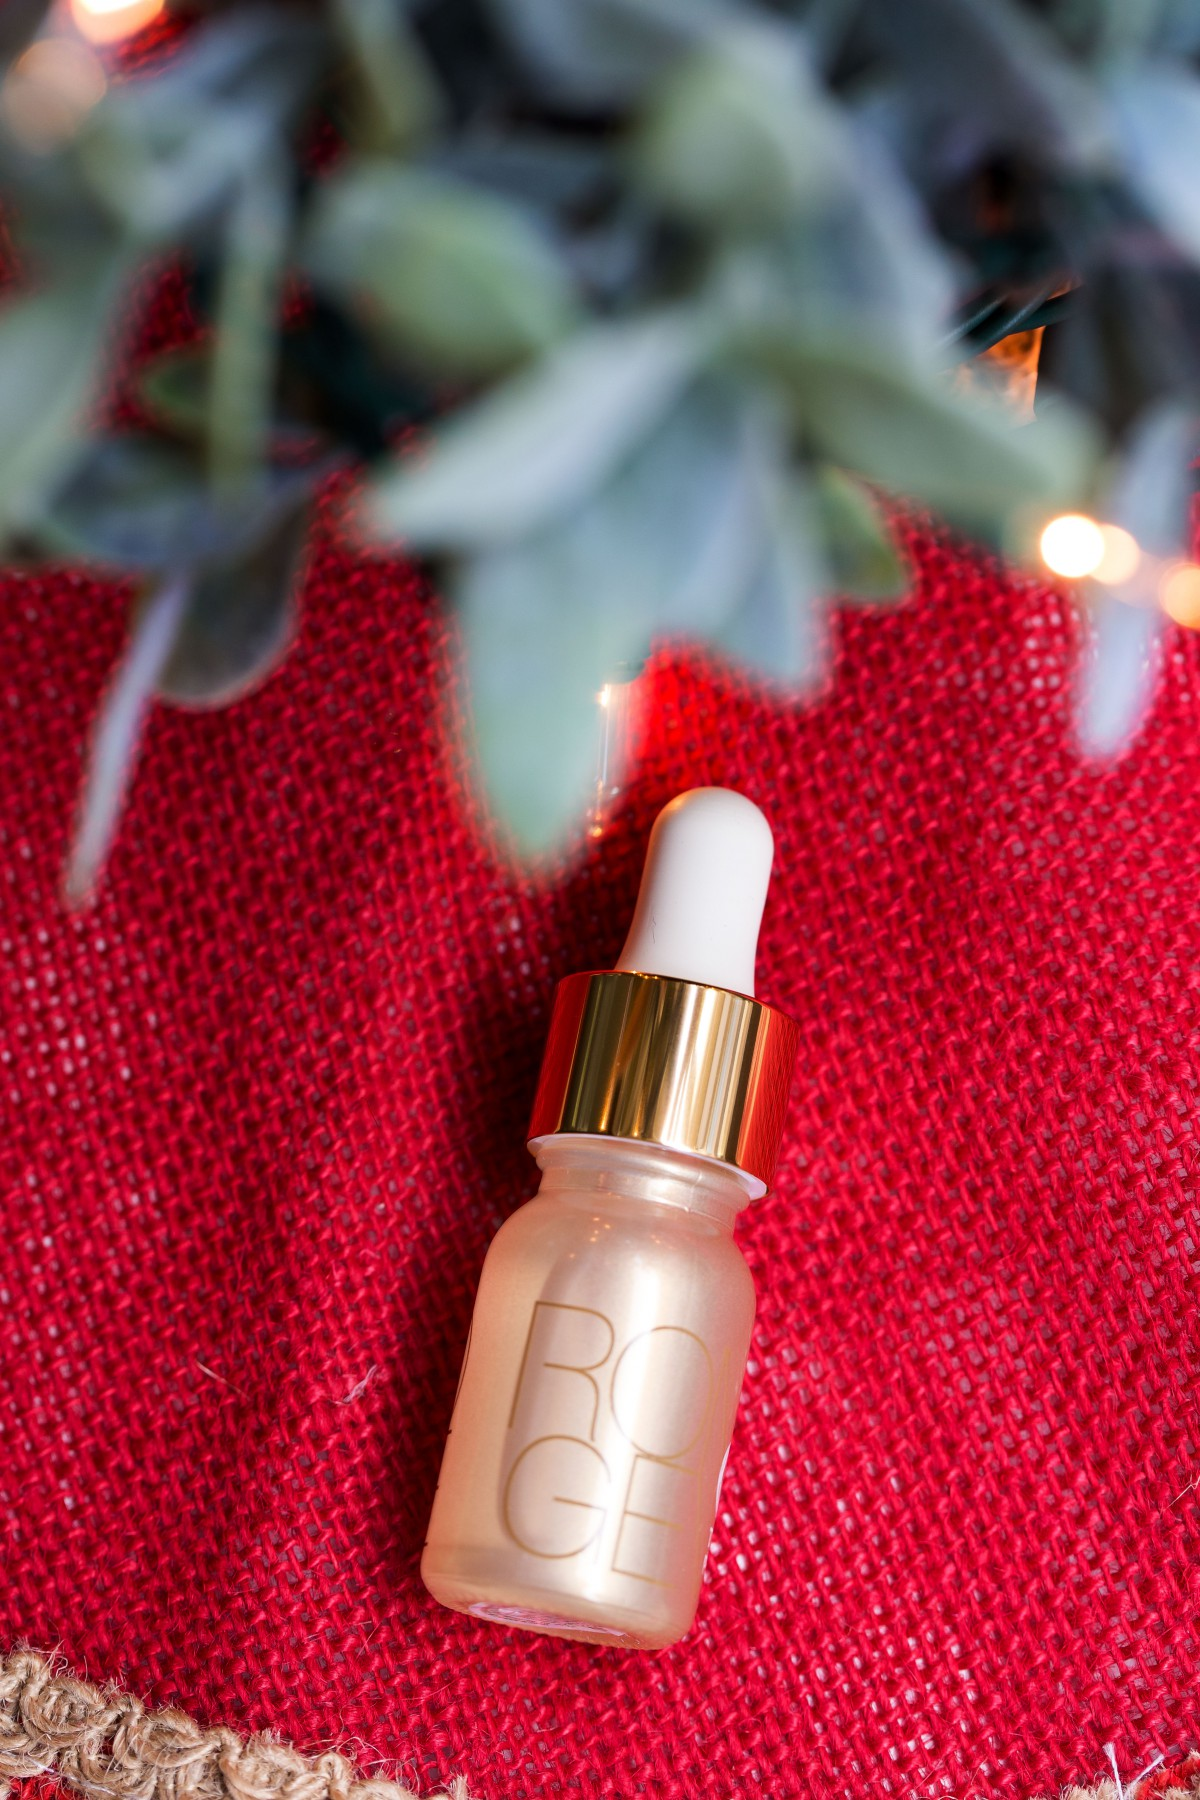 Koh Gen Do Holiday Giveaway